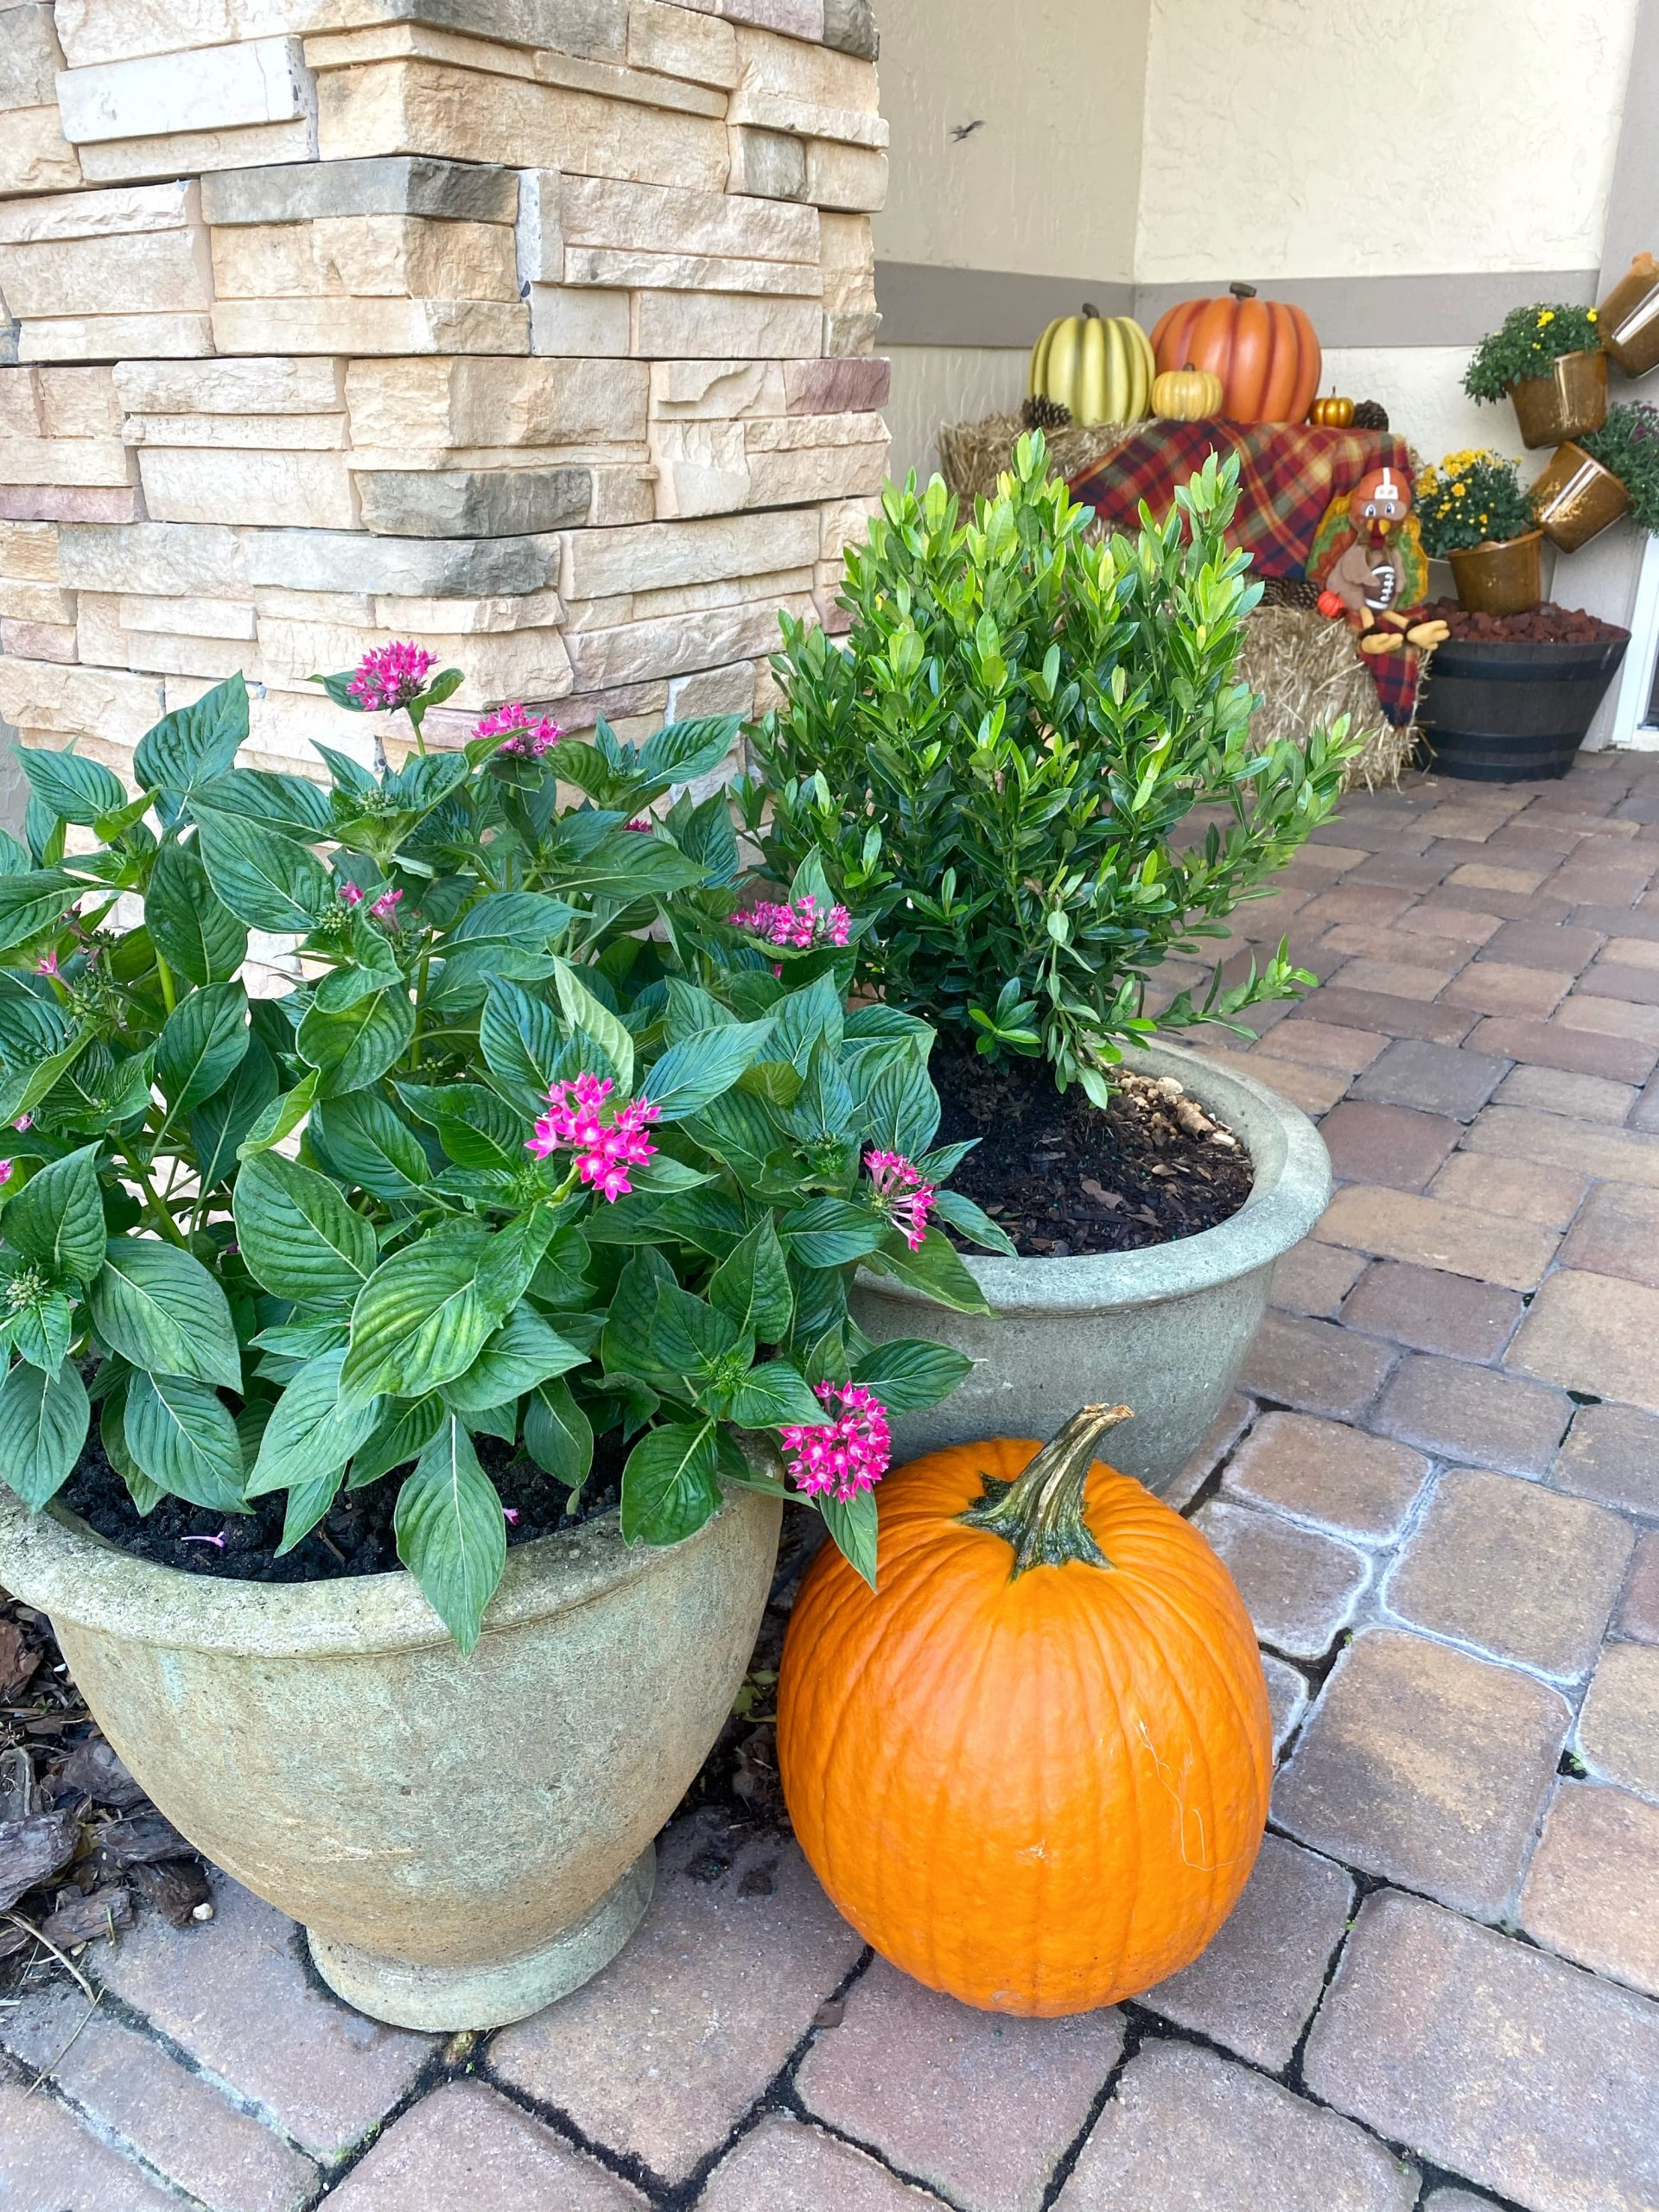 pumpkin next to flower pots